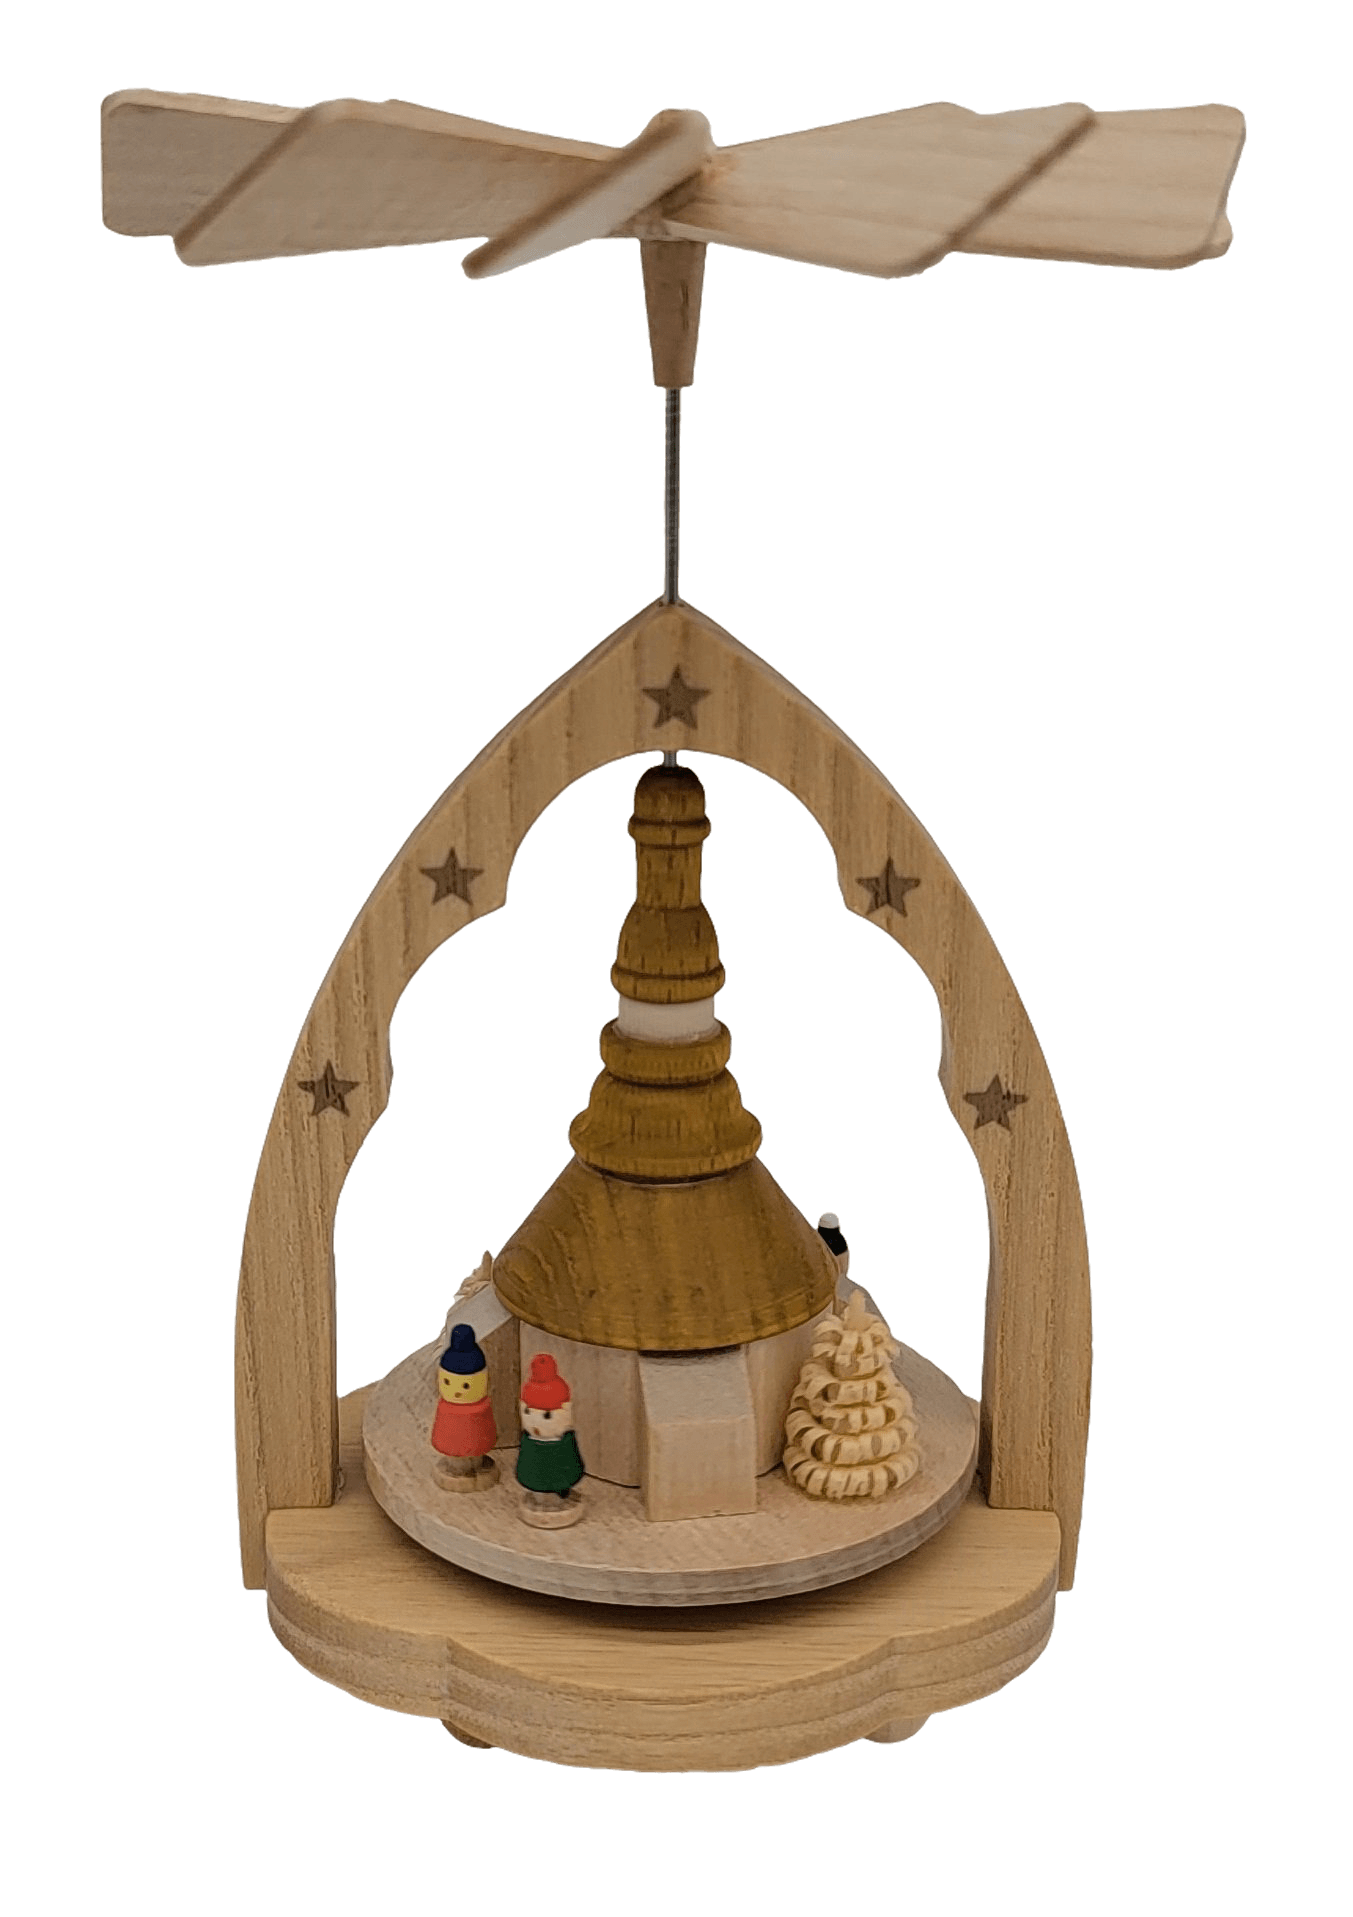 Pyramids - Richard Glaesser Seiffen church in natural wood with colorful people - Schmidt Christmas Market Christmas Decoration